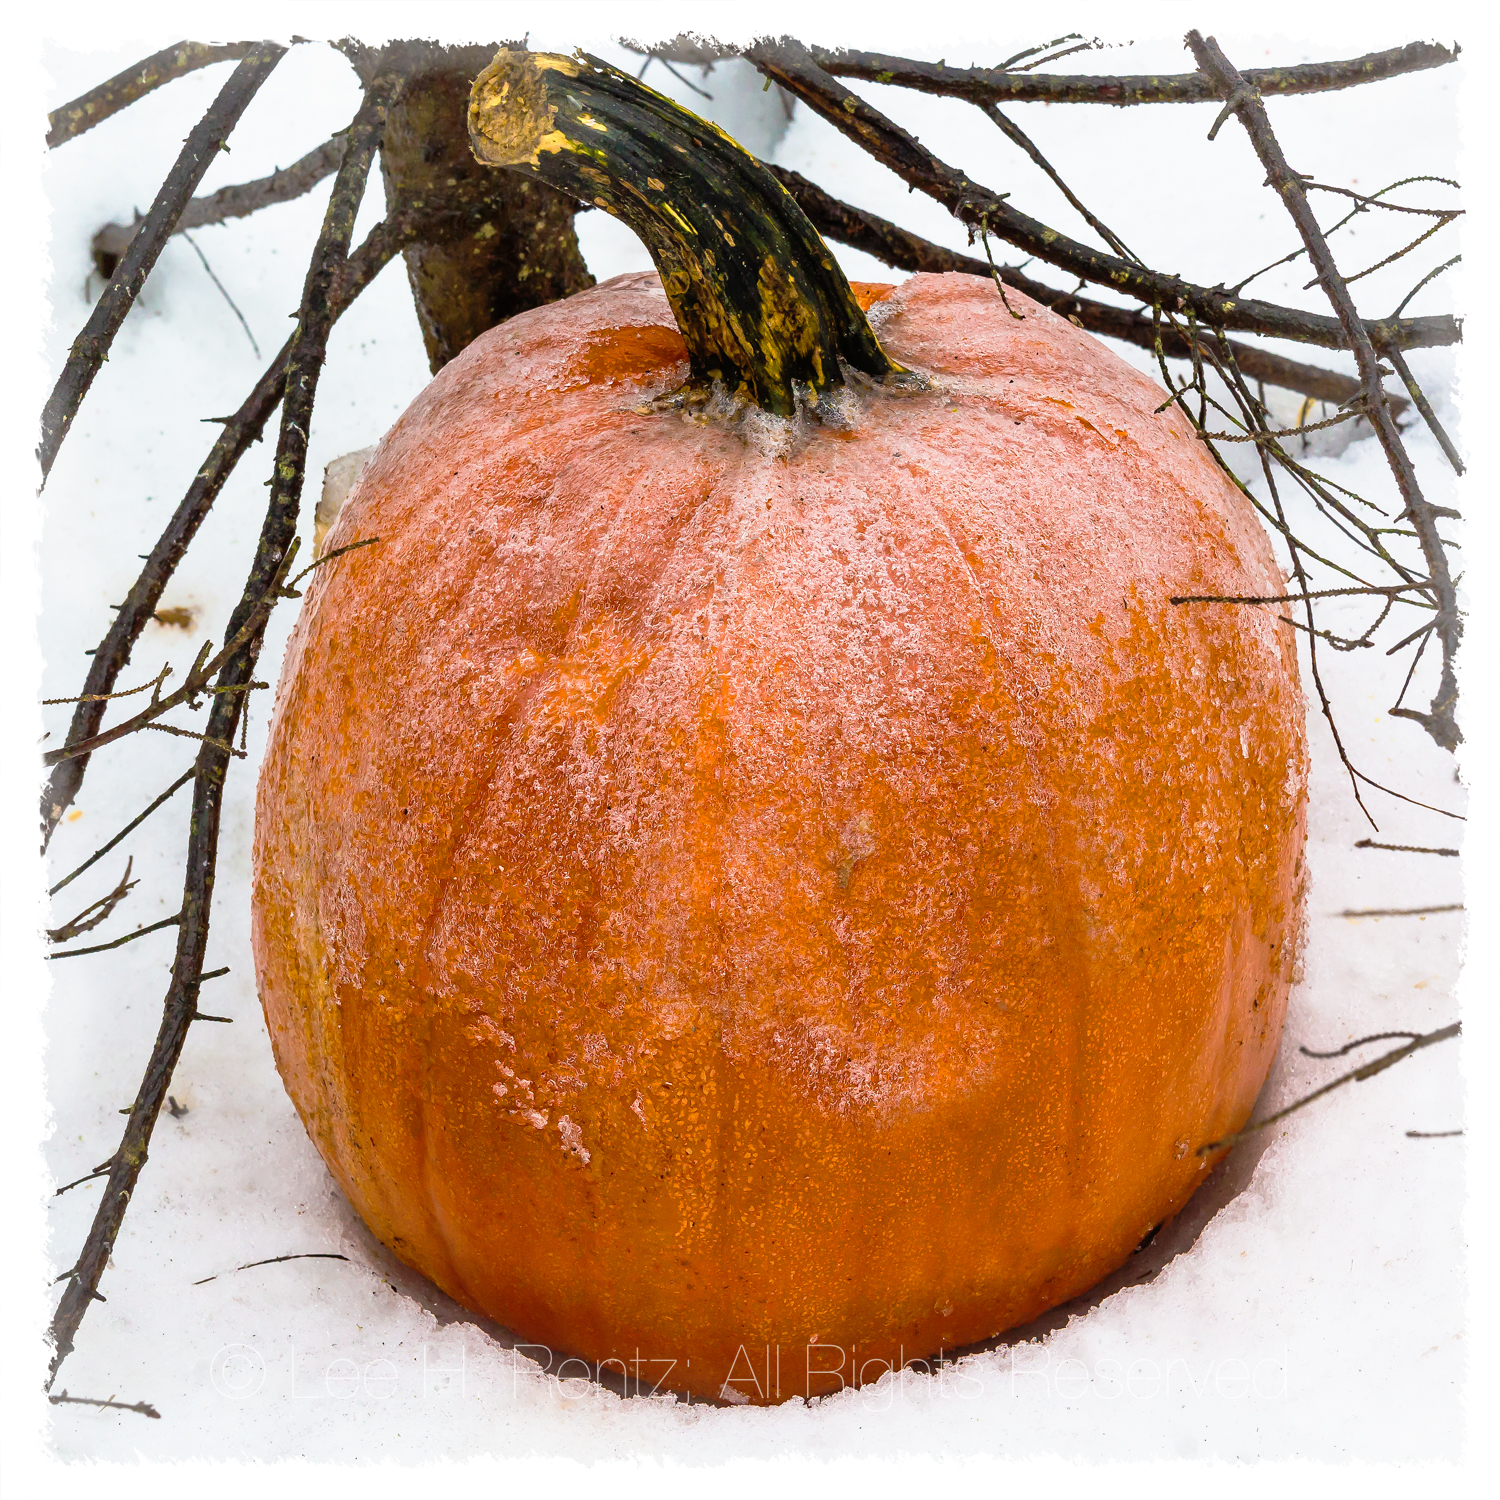 WHEN FROST IS ON THE PUMPKIN